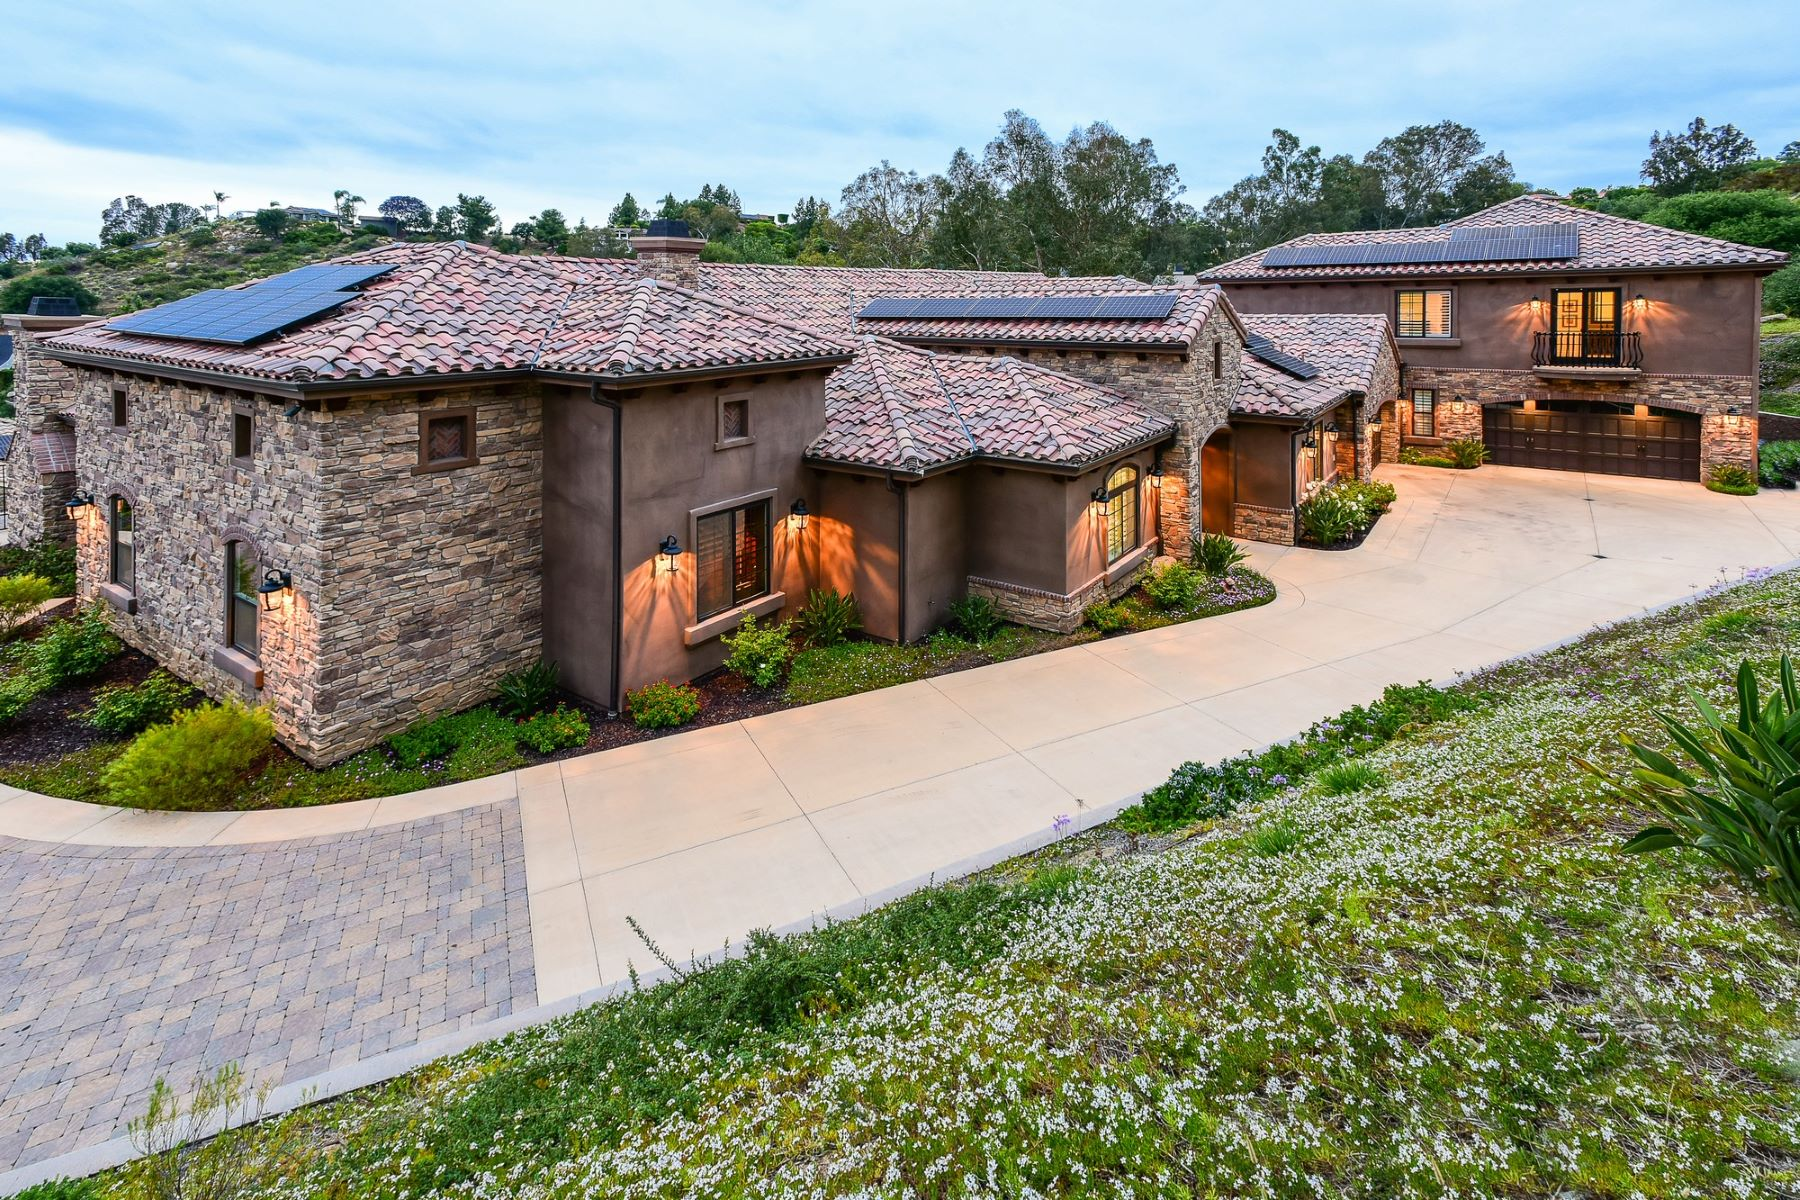 Single Family Homes for Sale at 15715 Bowl Creek Road Poway, California 92064 United States